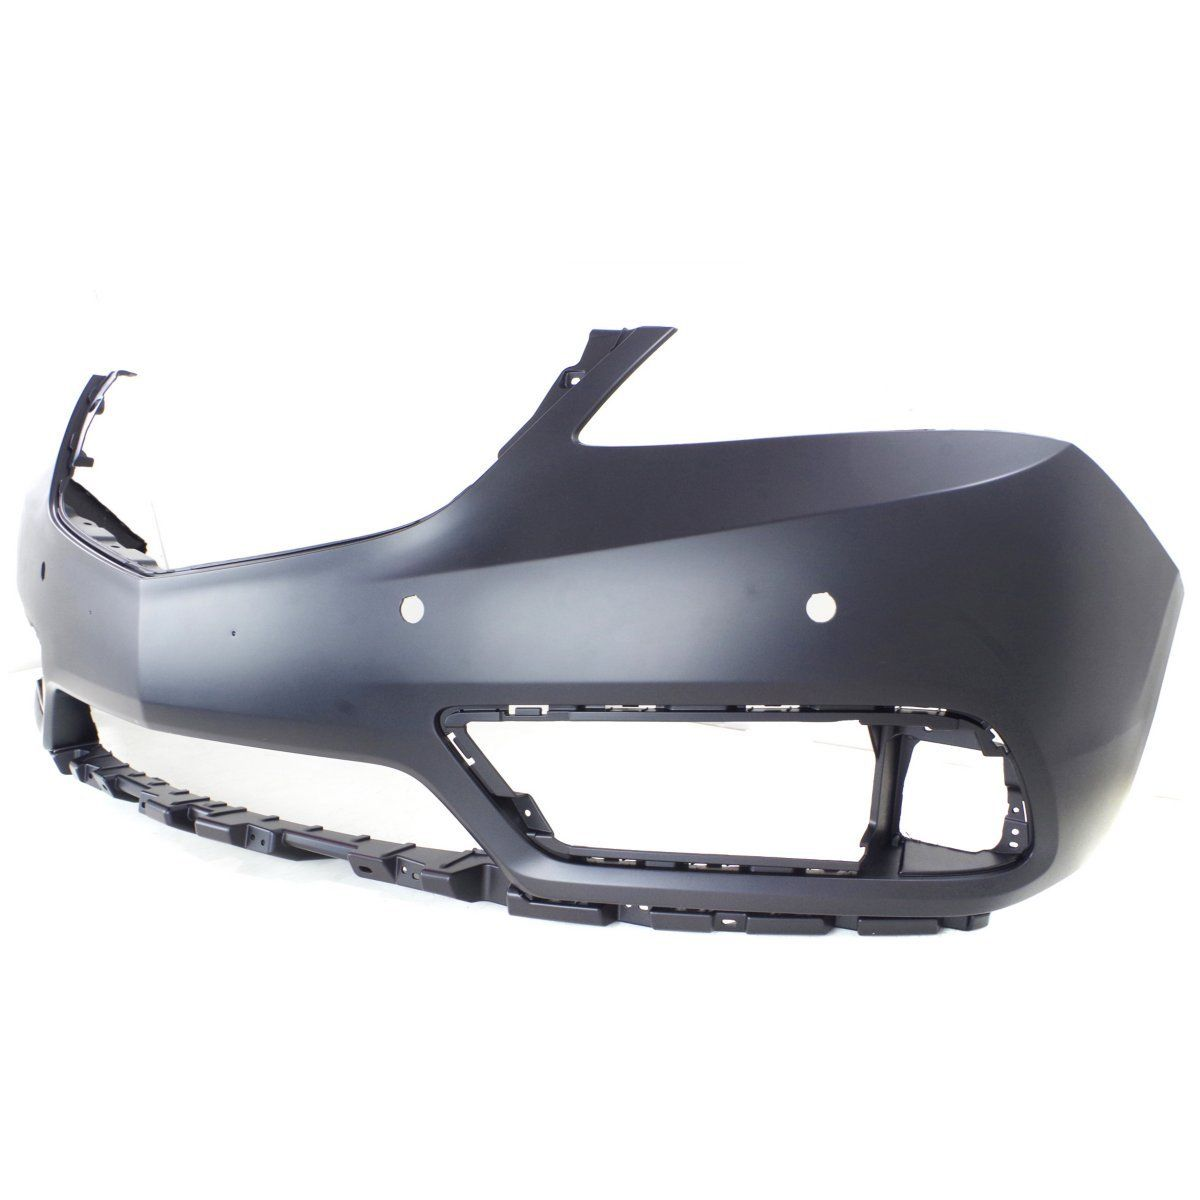 Front Bumper Cover For 2014-2016 Acura MDX W/Parking Snsr